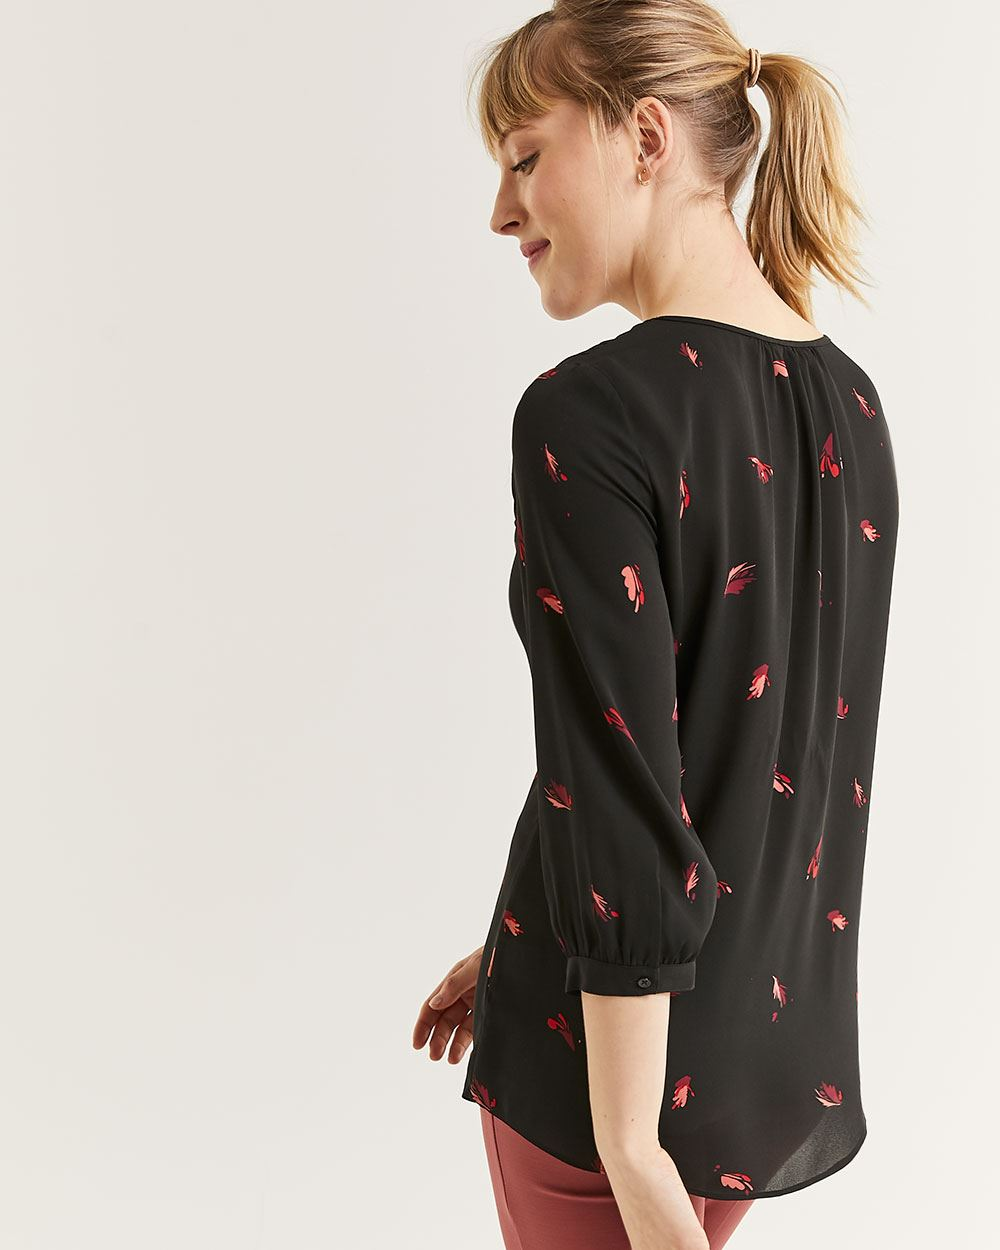 3/4 Sleeve Crew Neck Printed Blouse with Pintucks